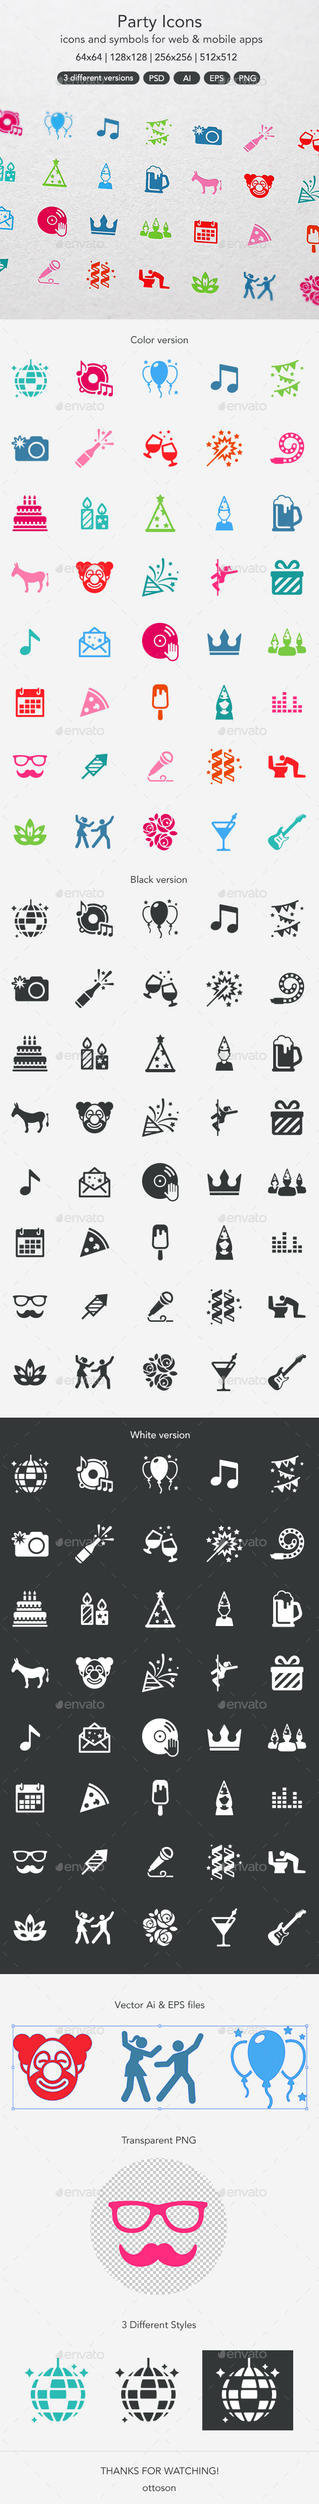 Party Icons by ottoson